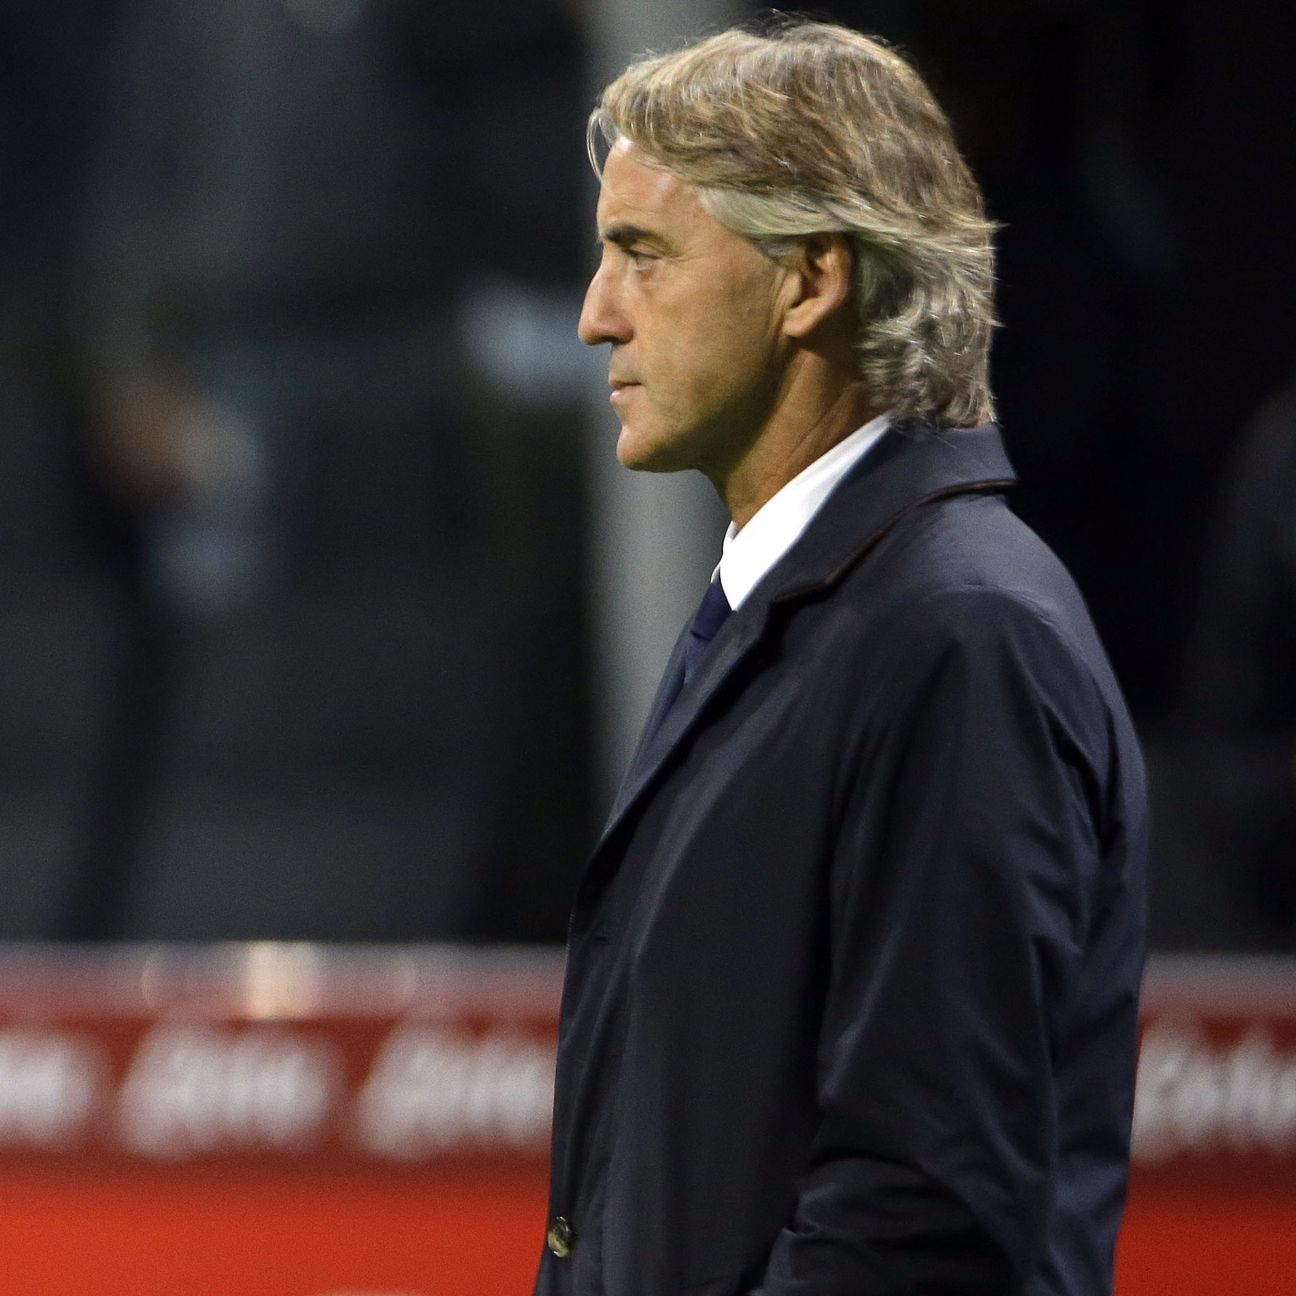 Inter Milan boss Roberto Mancini has been unafraid to shuffle his lineups this season.